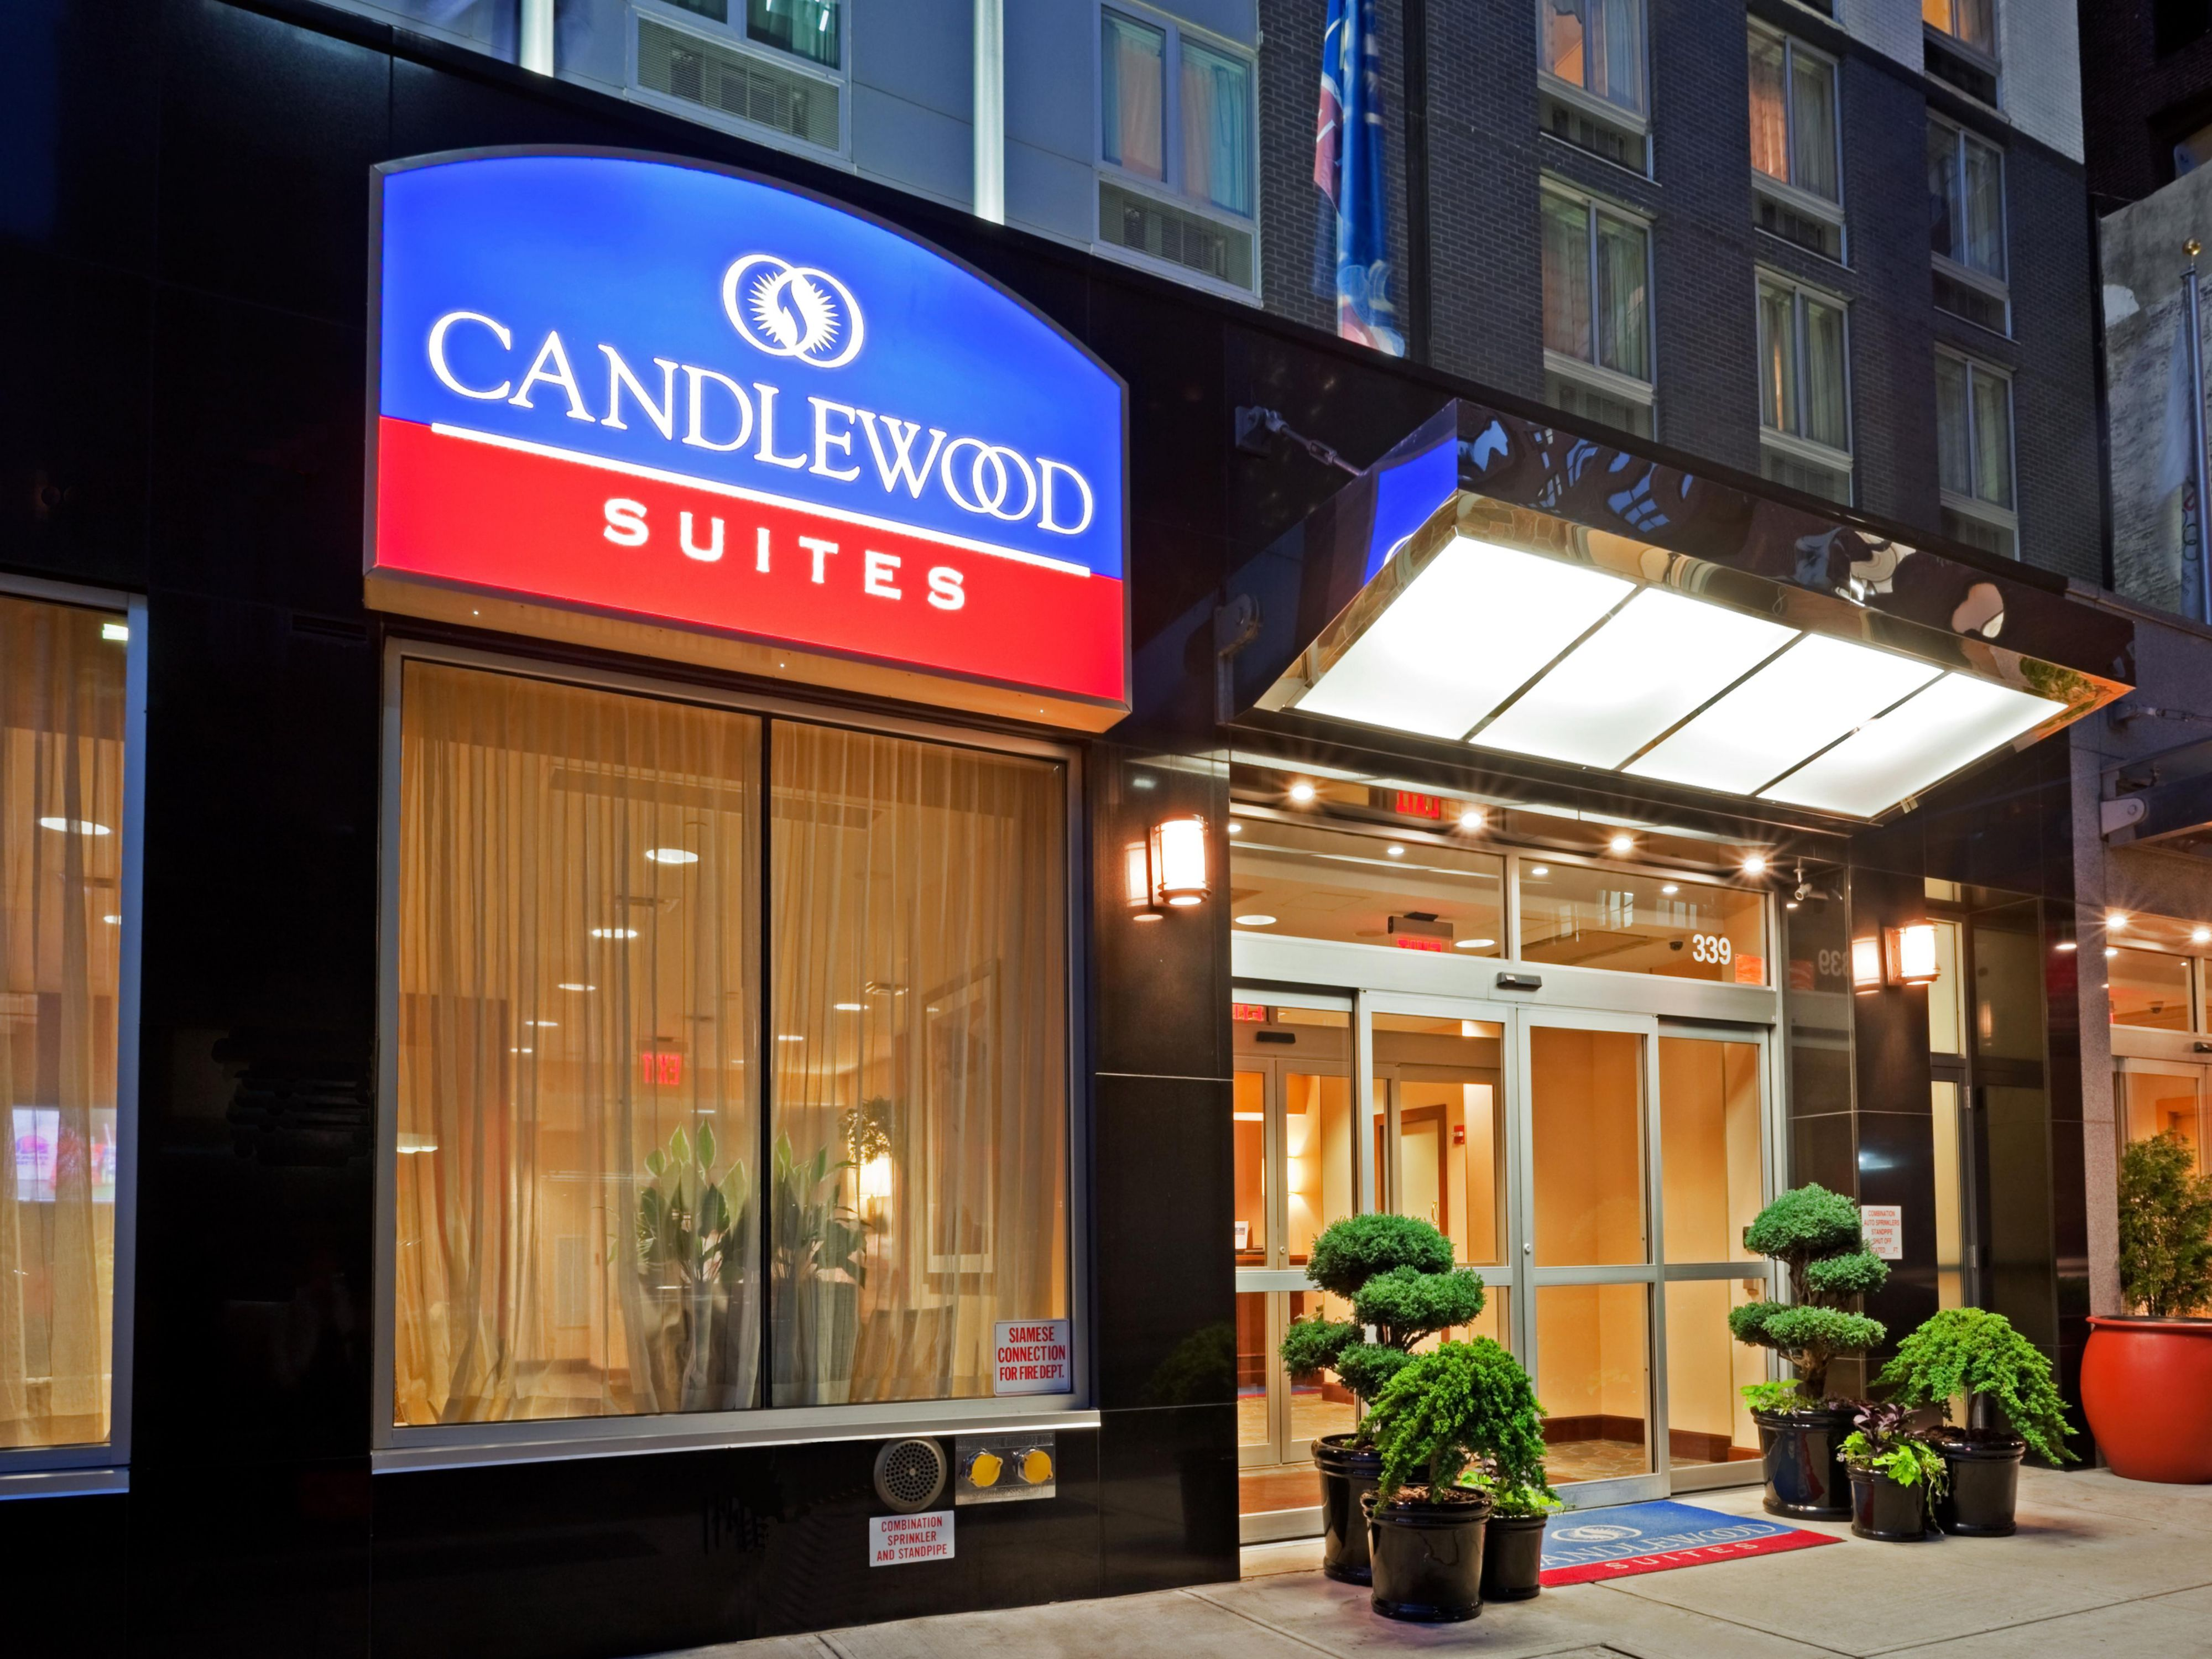 Things to do in new york near candlewood suites new york for Times square new york things to do